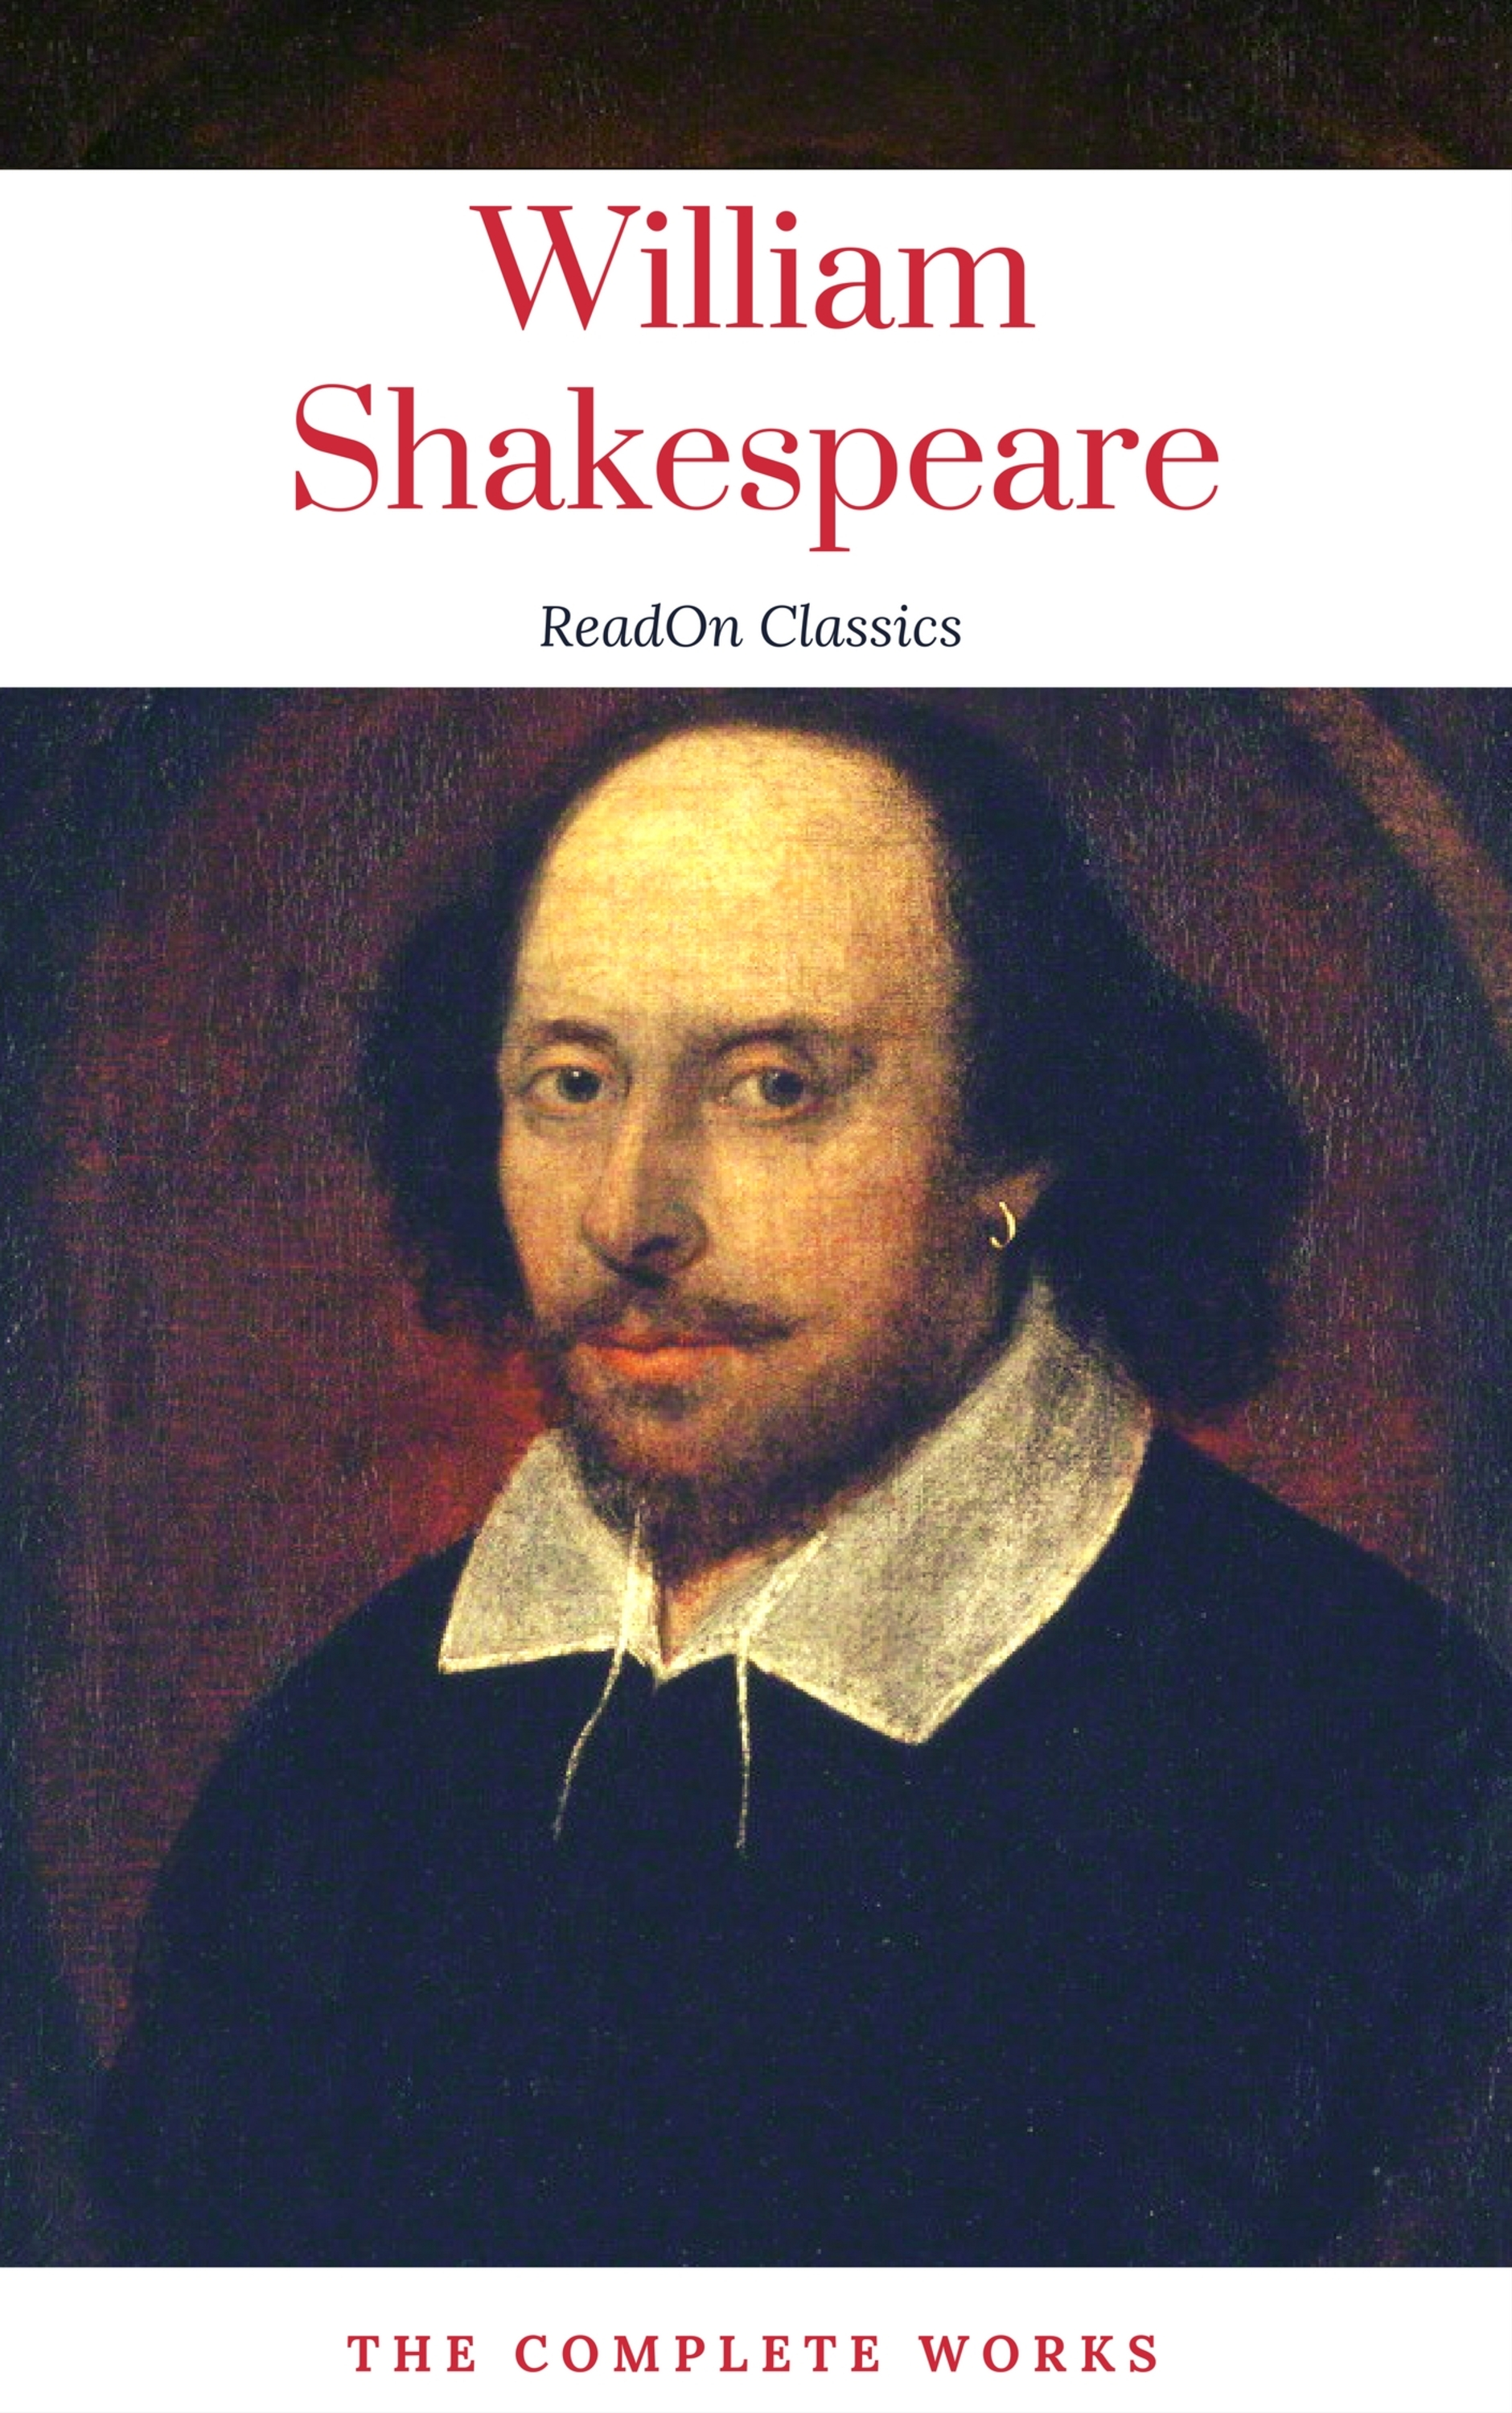 the actually complete works of william shakespeare readon classics